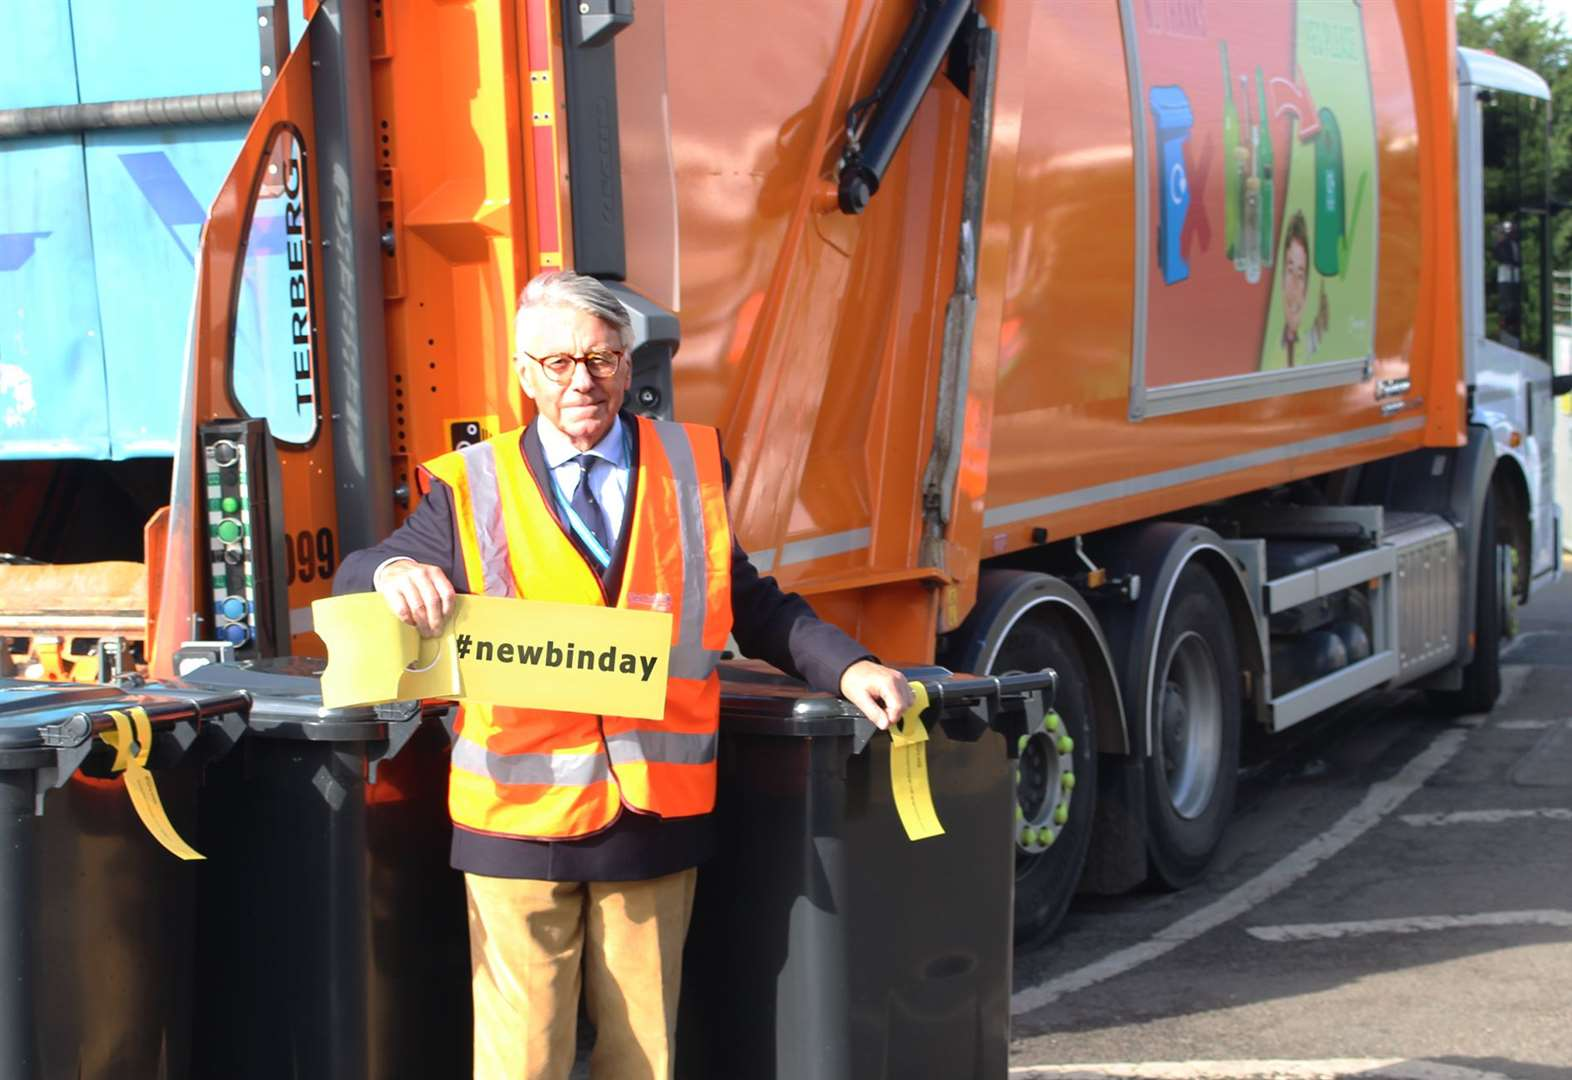 No alternative to £22k bin day letter, says West Suffolk Council